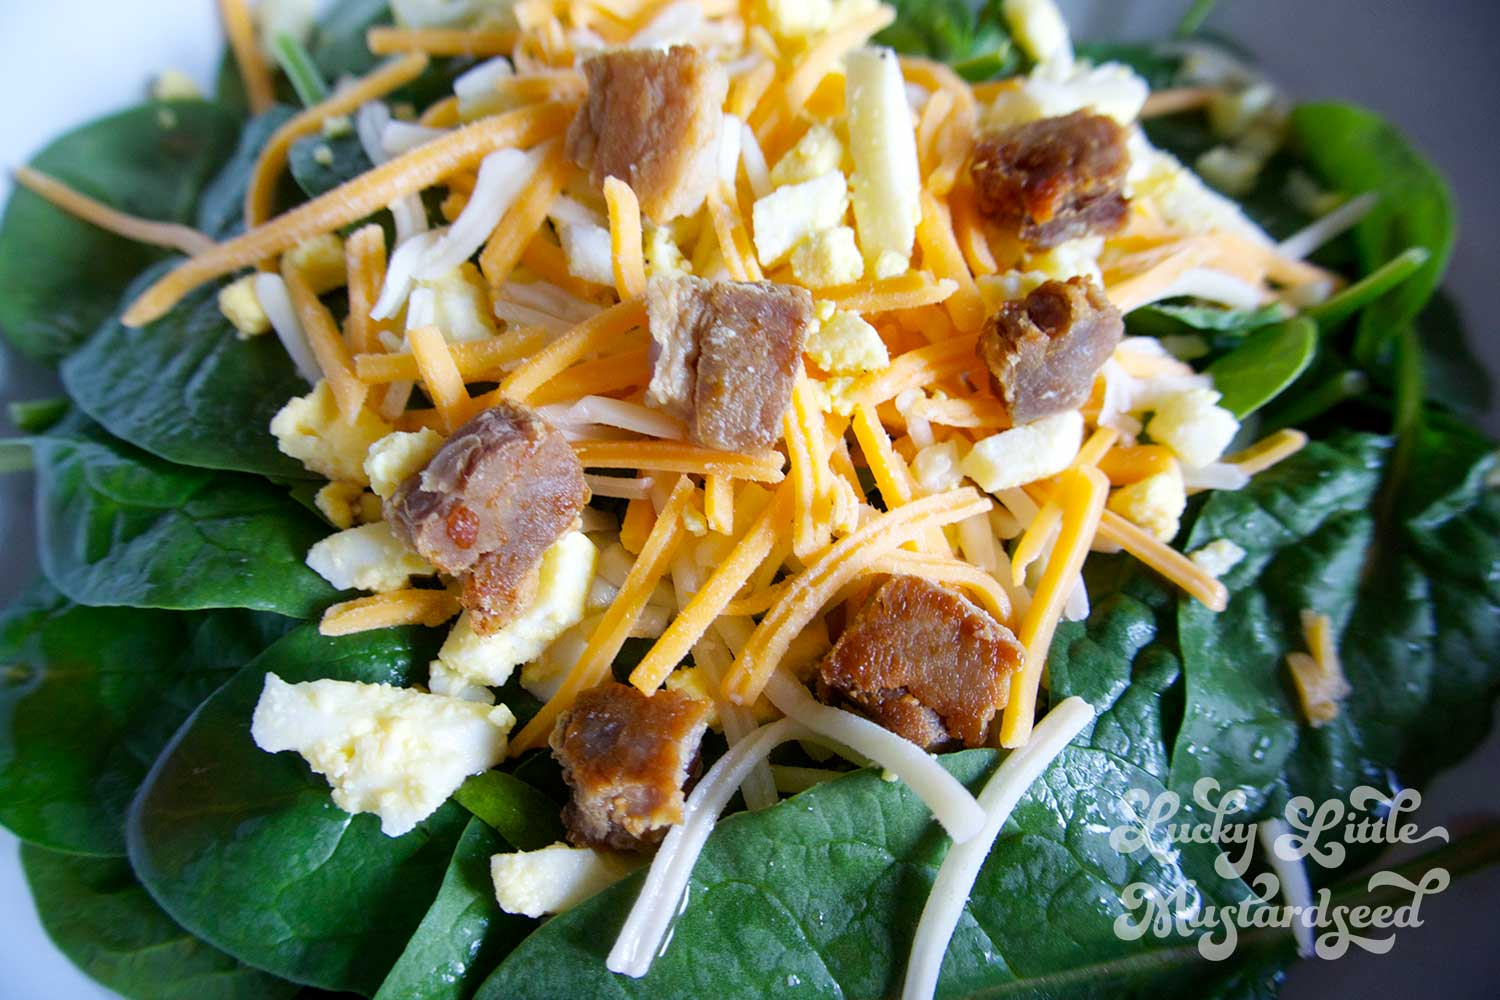 Spinach Salad with Bacon Croutons